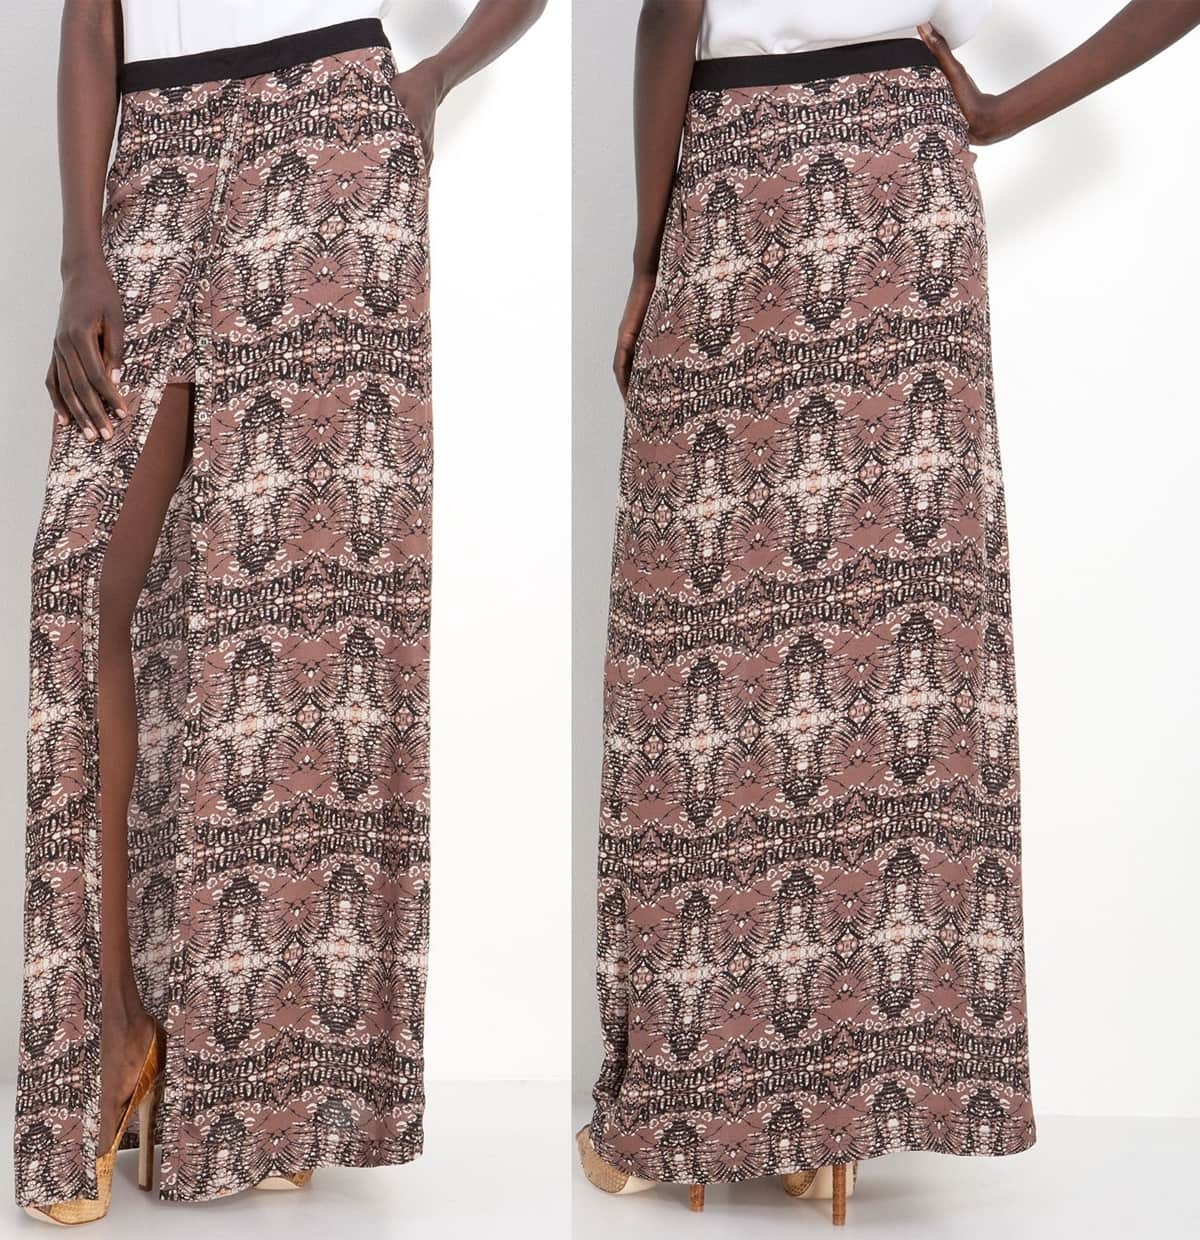 A band of grosgrain ribbon tops a Batik-patterned skirt designed with a button closure that adjusts the high, flirty front slit